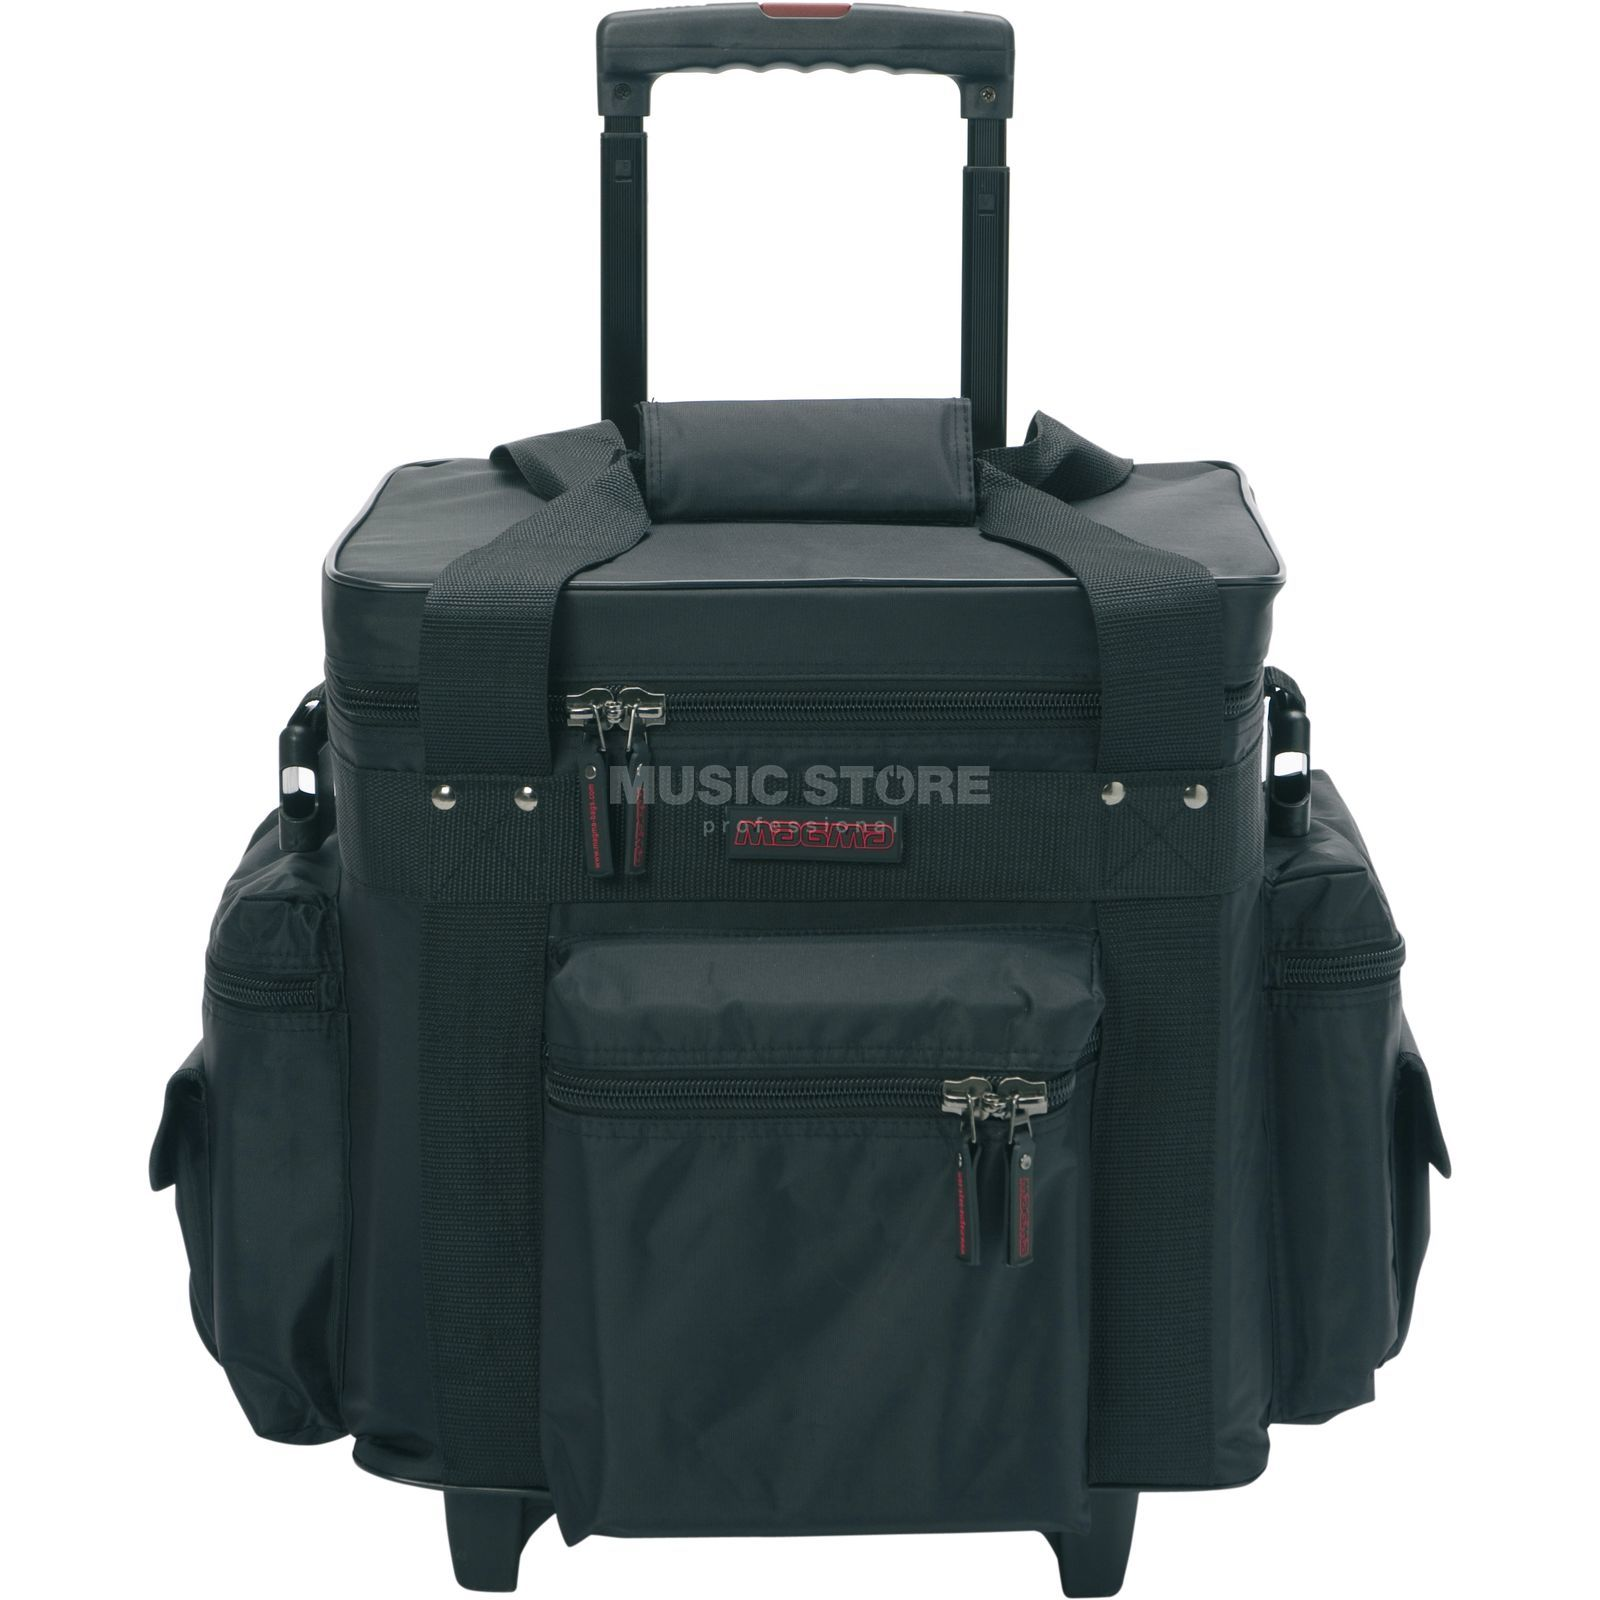 Magma LP-Bag 100 Trolley black/red  Produktbillede